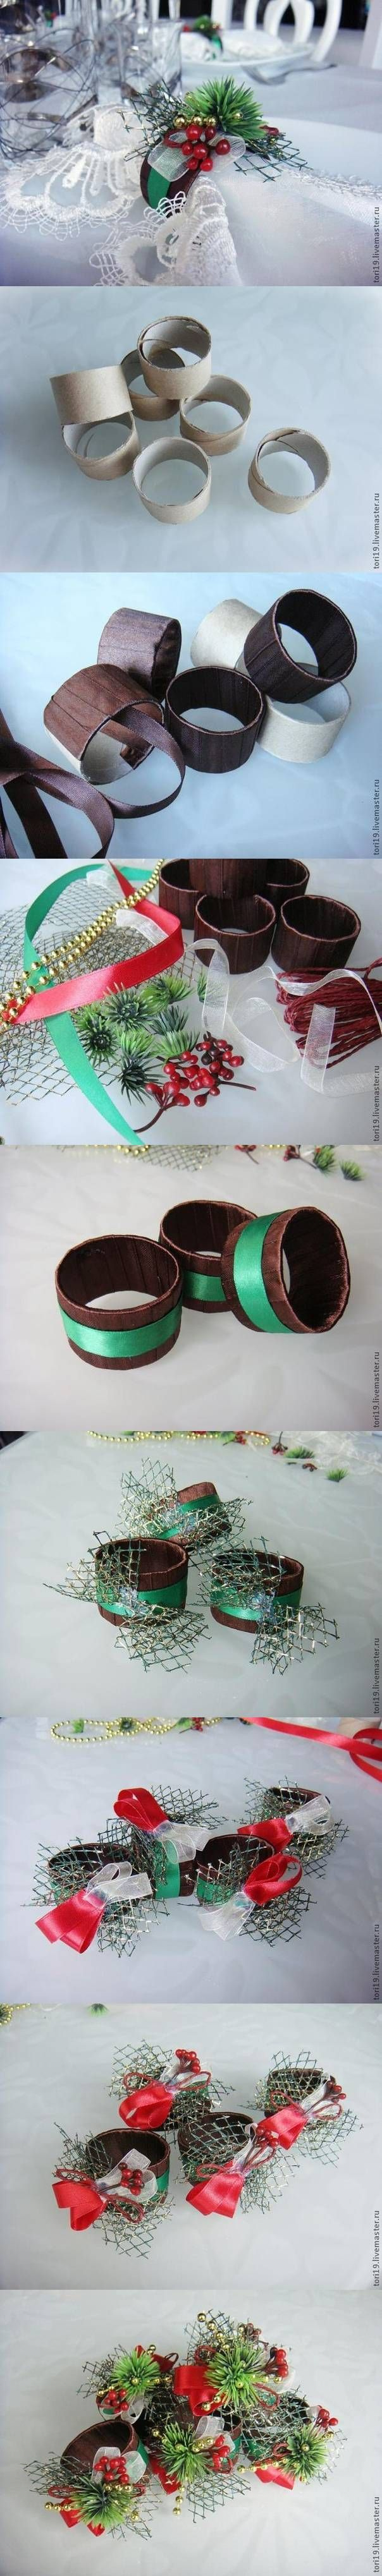 DIY Toilet Paper Roll Decorative Napkin Rings | iCreativeIdeas.com Like Us on Facebook ==> https://www.facebook.com/icreativeideas